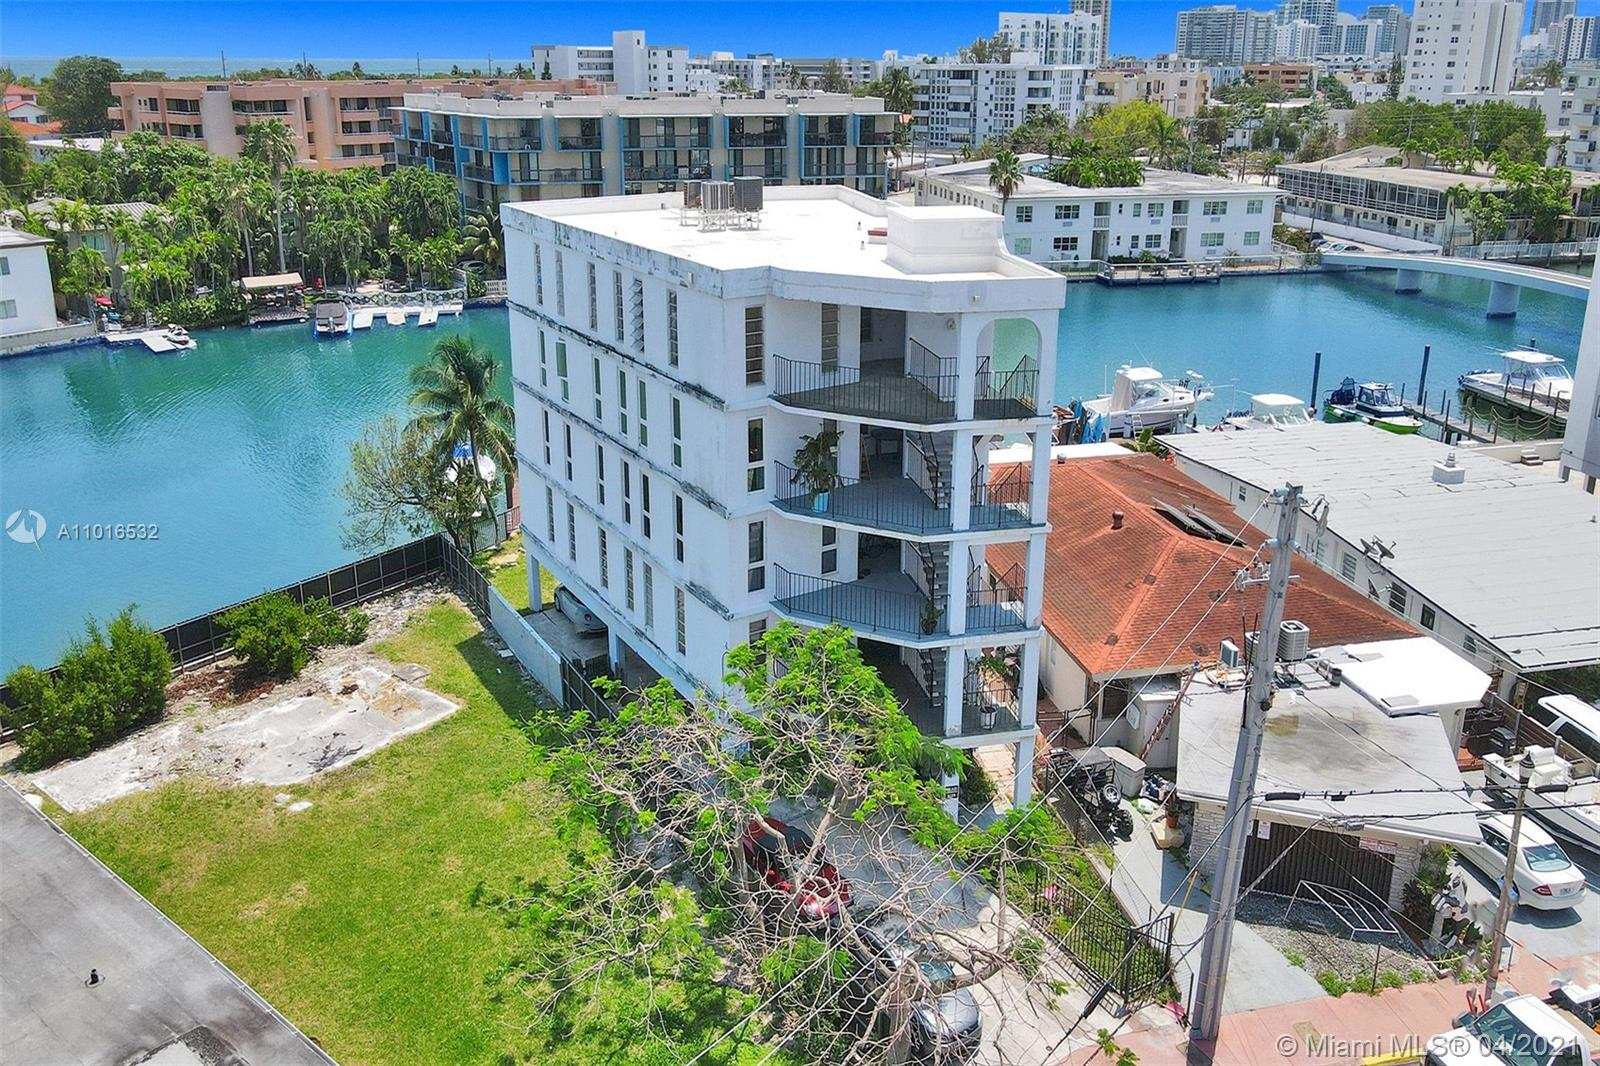 Best Priced waterfront Condo on Crespi Blvd Tatum Waterway Canal in the heart of Miami Beach with a boat dock. A Very well-kept unit with Wood floors, Impact Windows, Chef's Kitchen, & amazing views in a small condo total 4 units, one unit on each floor including with Impact windows and assigned parking space. Only Minutes to Bal Harbor, Bay Harbor Islands, and Surfside. Building is going major renovations including elevator modernization & cab replacement, gate repair, concrete restoration, waterproof pit and exterior wall painting. Tenant occupied until September 19, 2021